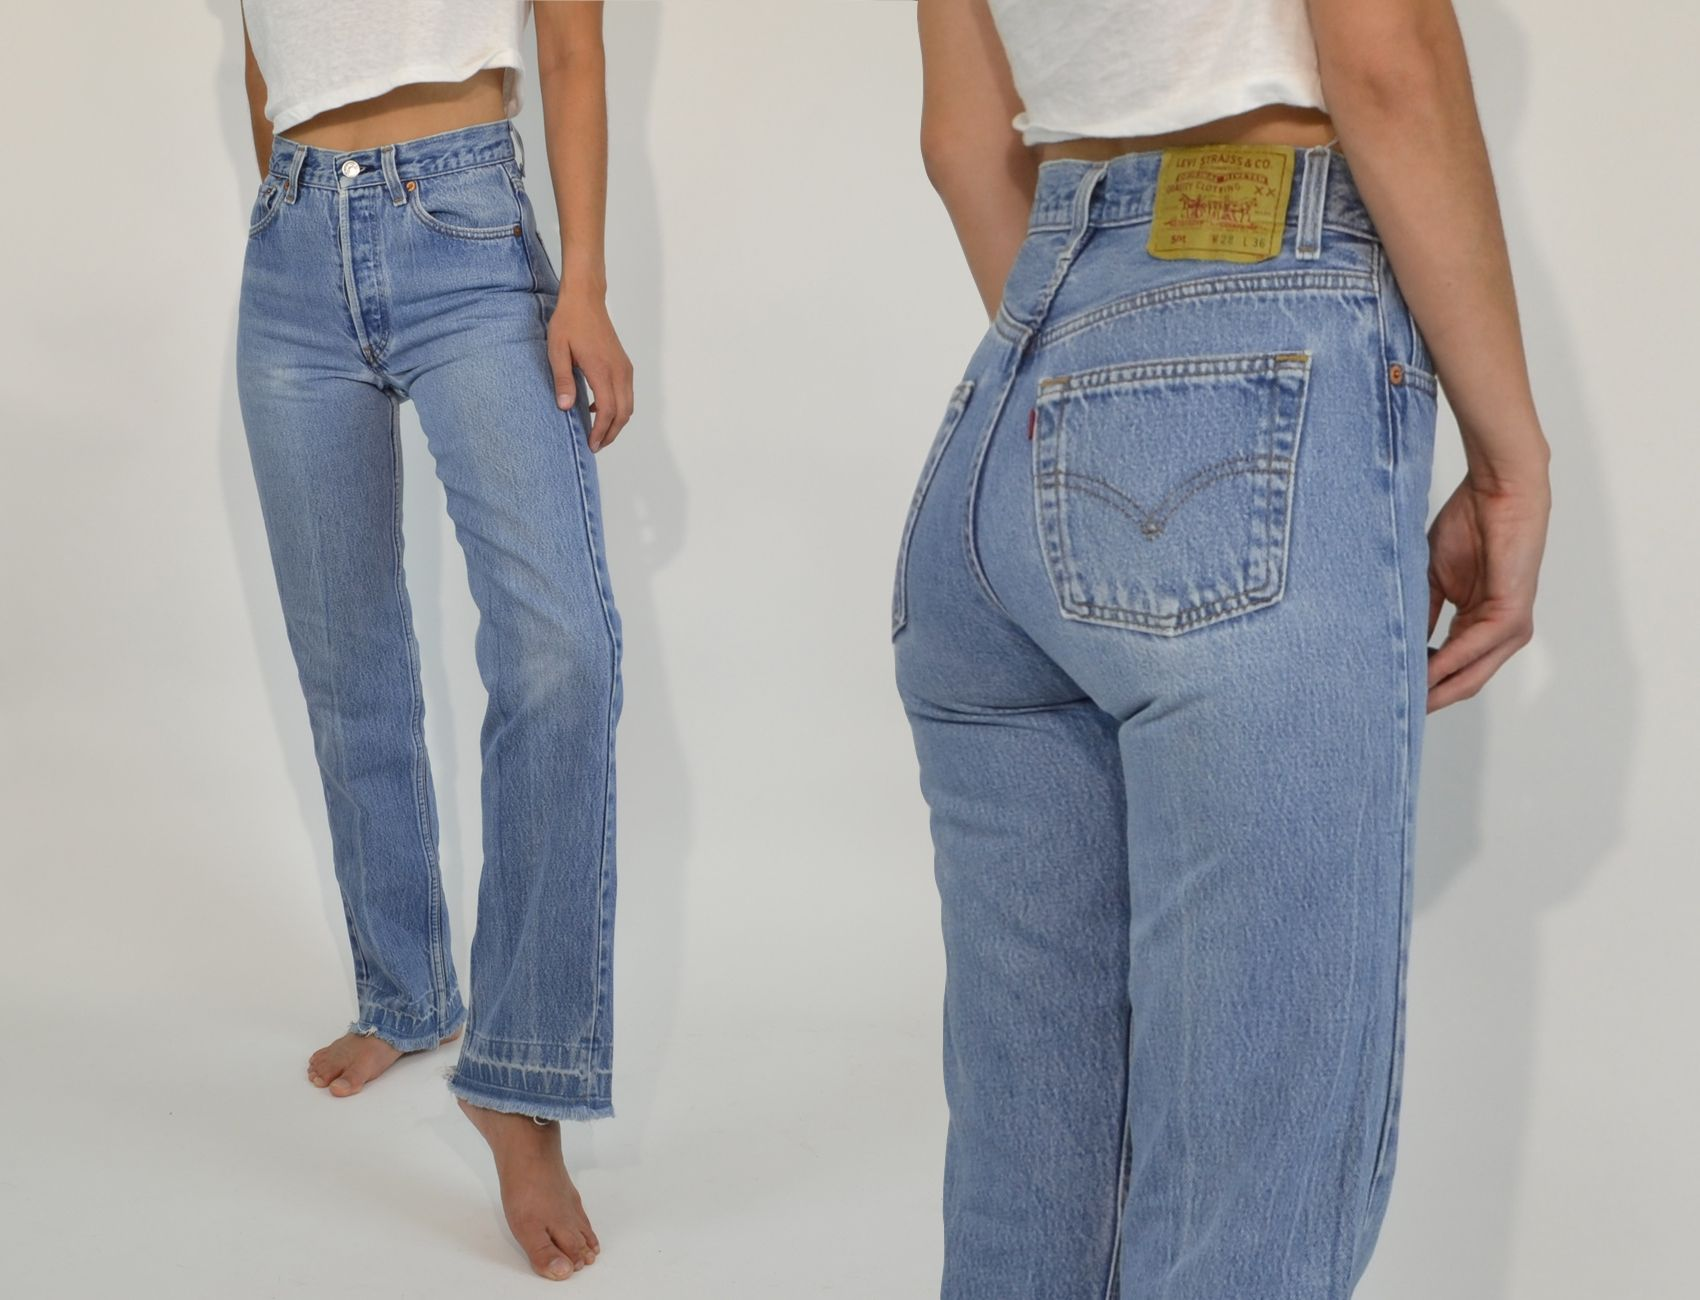 80 S High Waisted Denim Levi Jeans 501 Vintage Levis 501 Mom Jeans Outfit